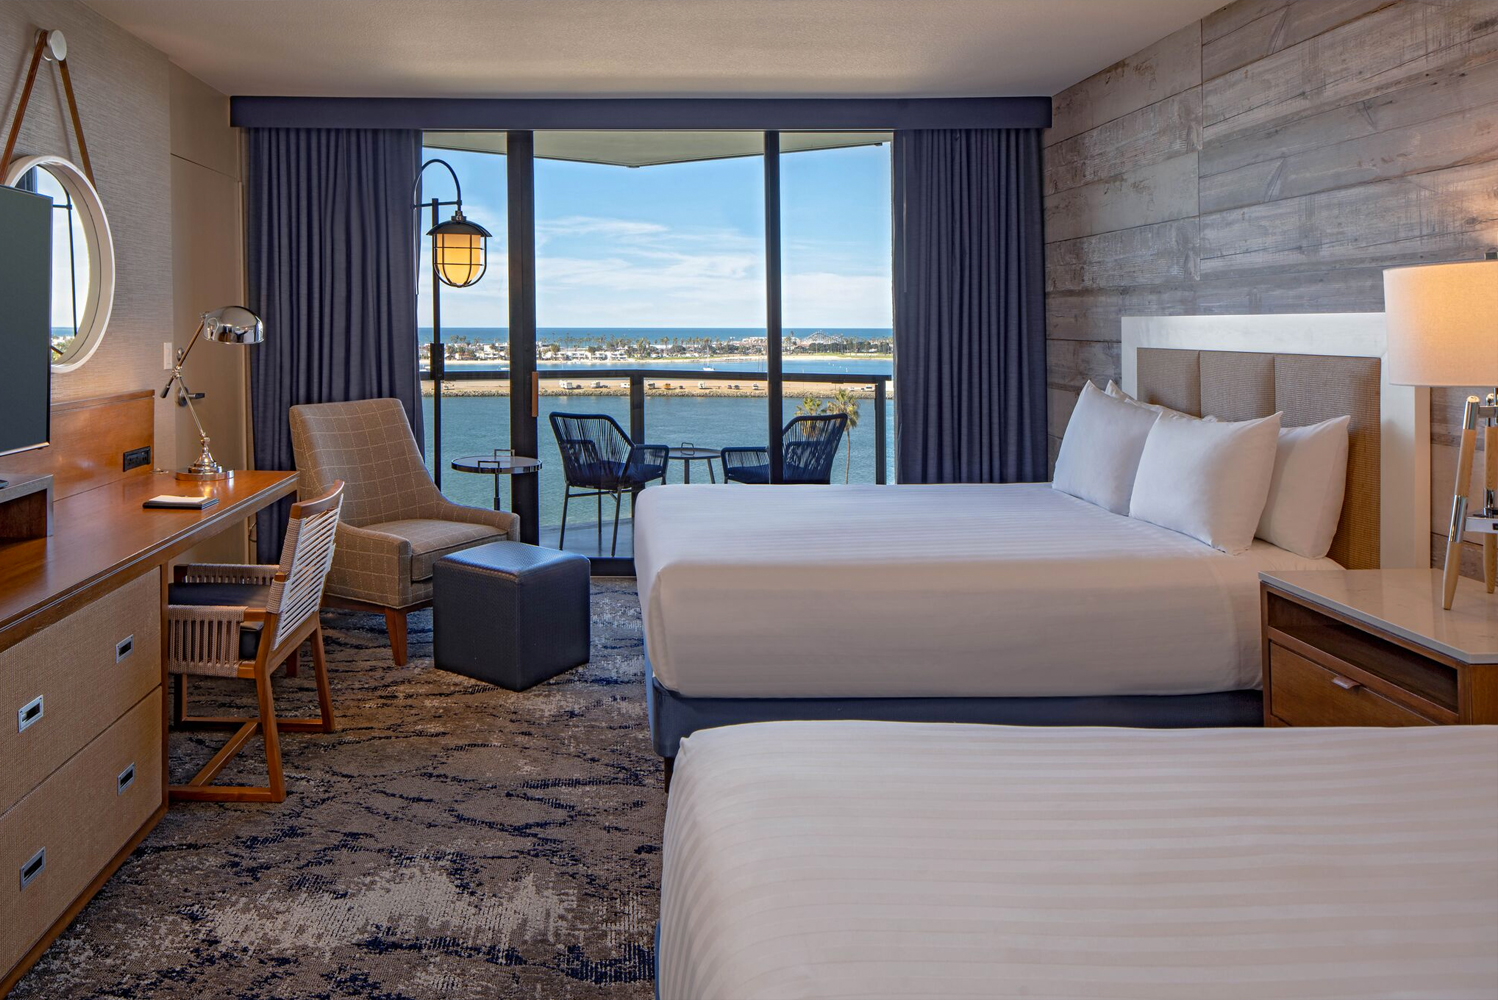 Renovated guestrooms have new wall coverings, including an accent shiplap wall, carpeting and balcony furniture.